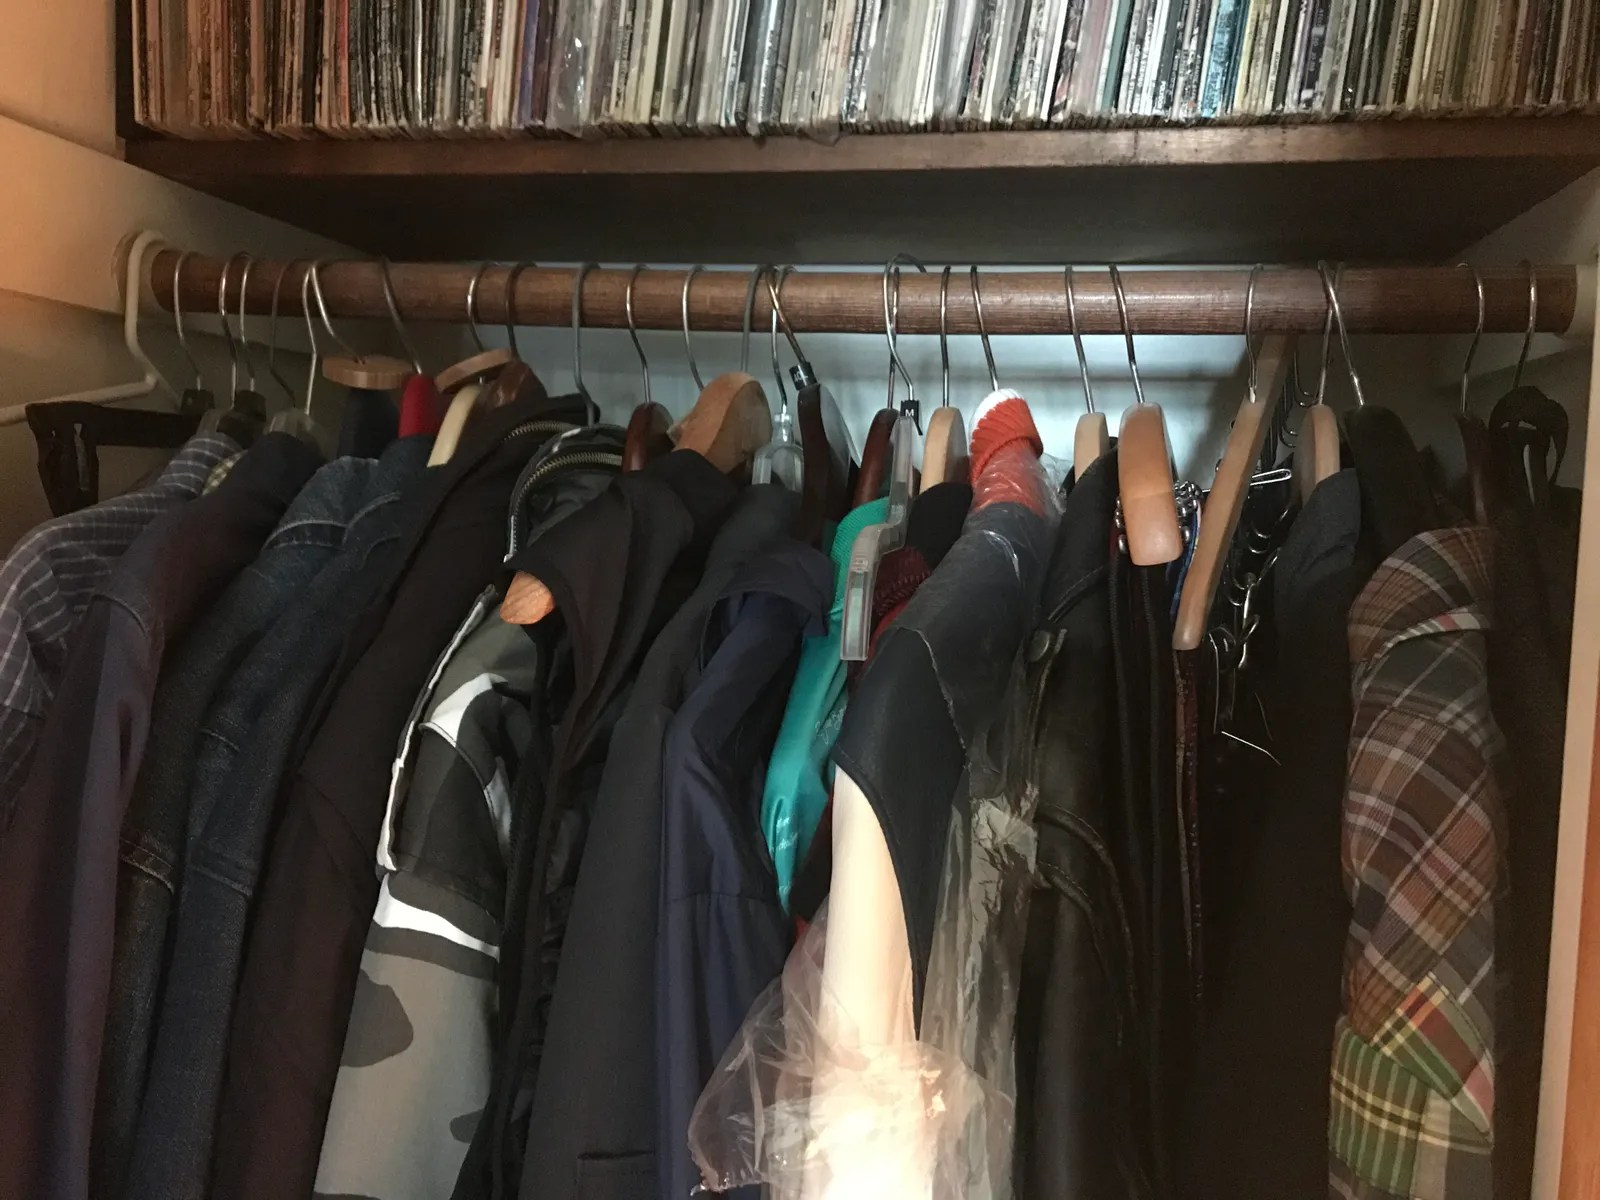 a rack in a storage unit with many jackets on hangers and a shelf of records above